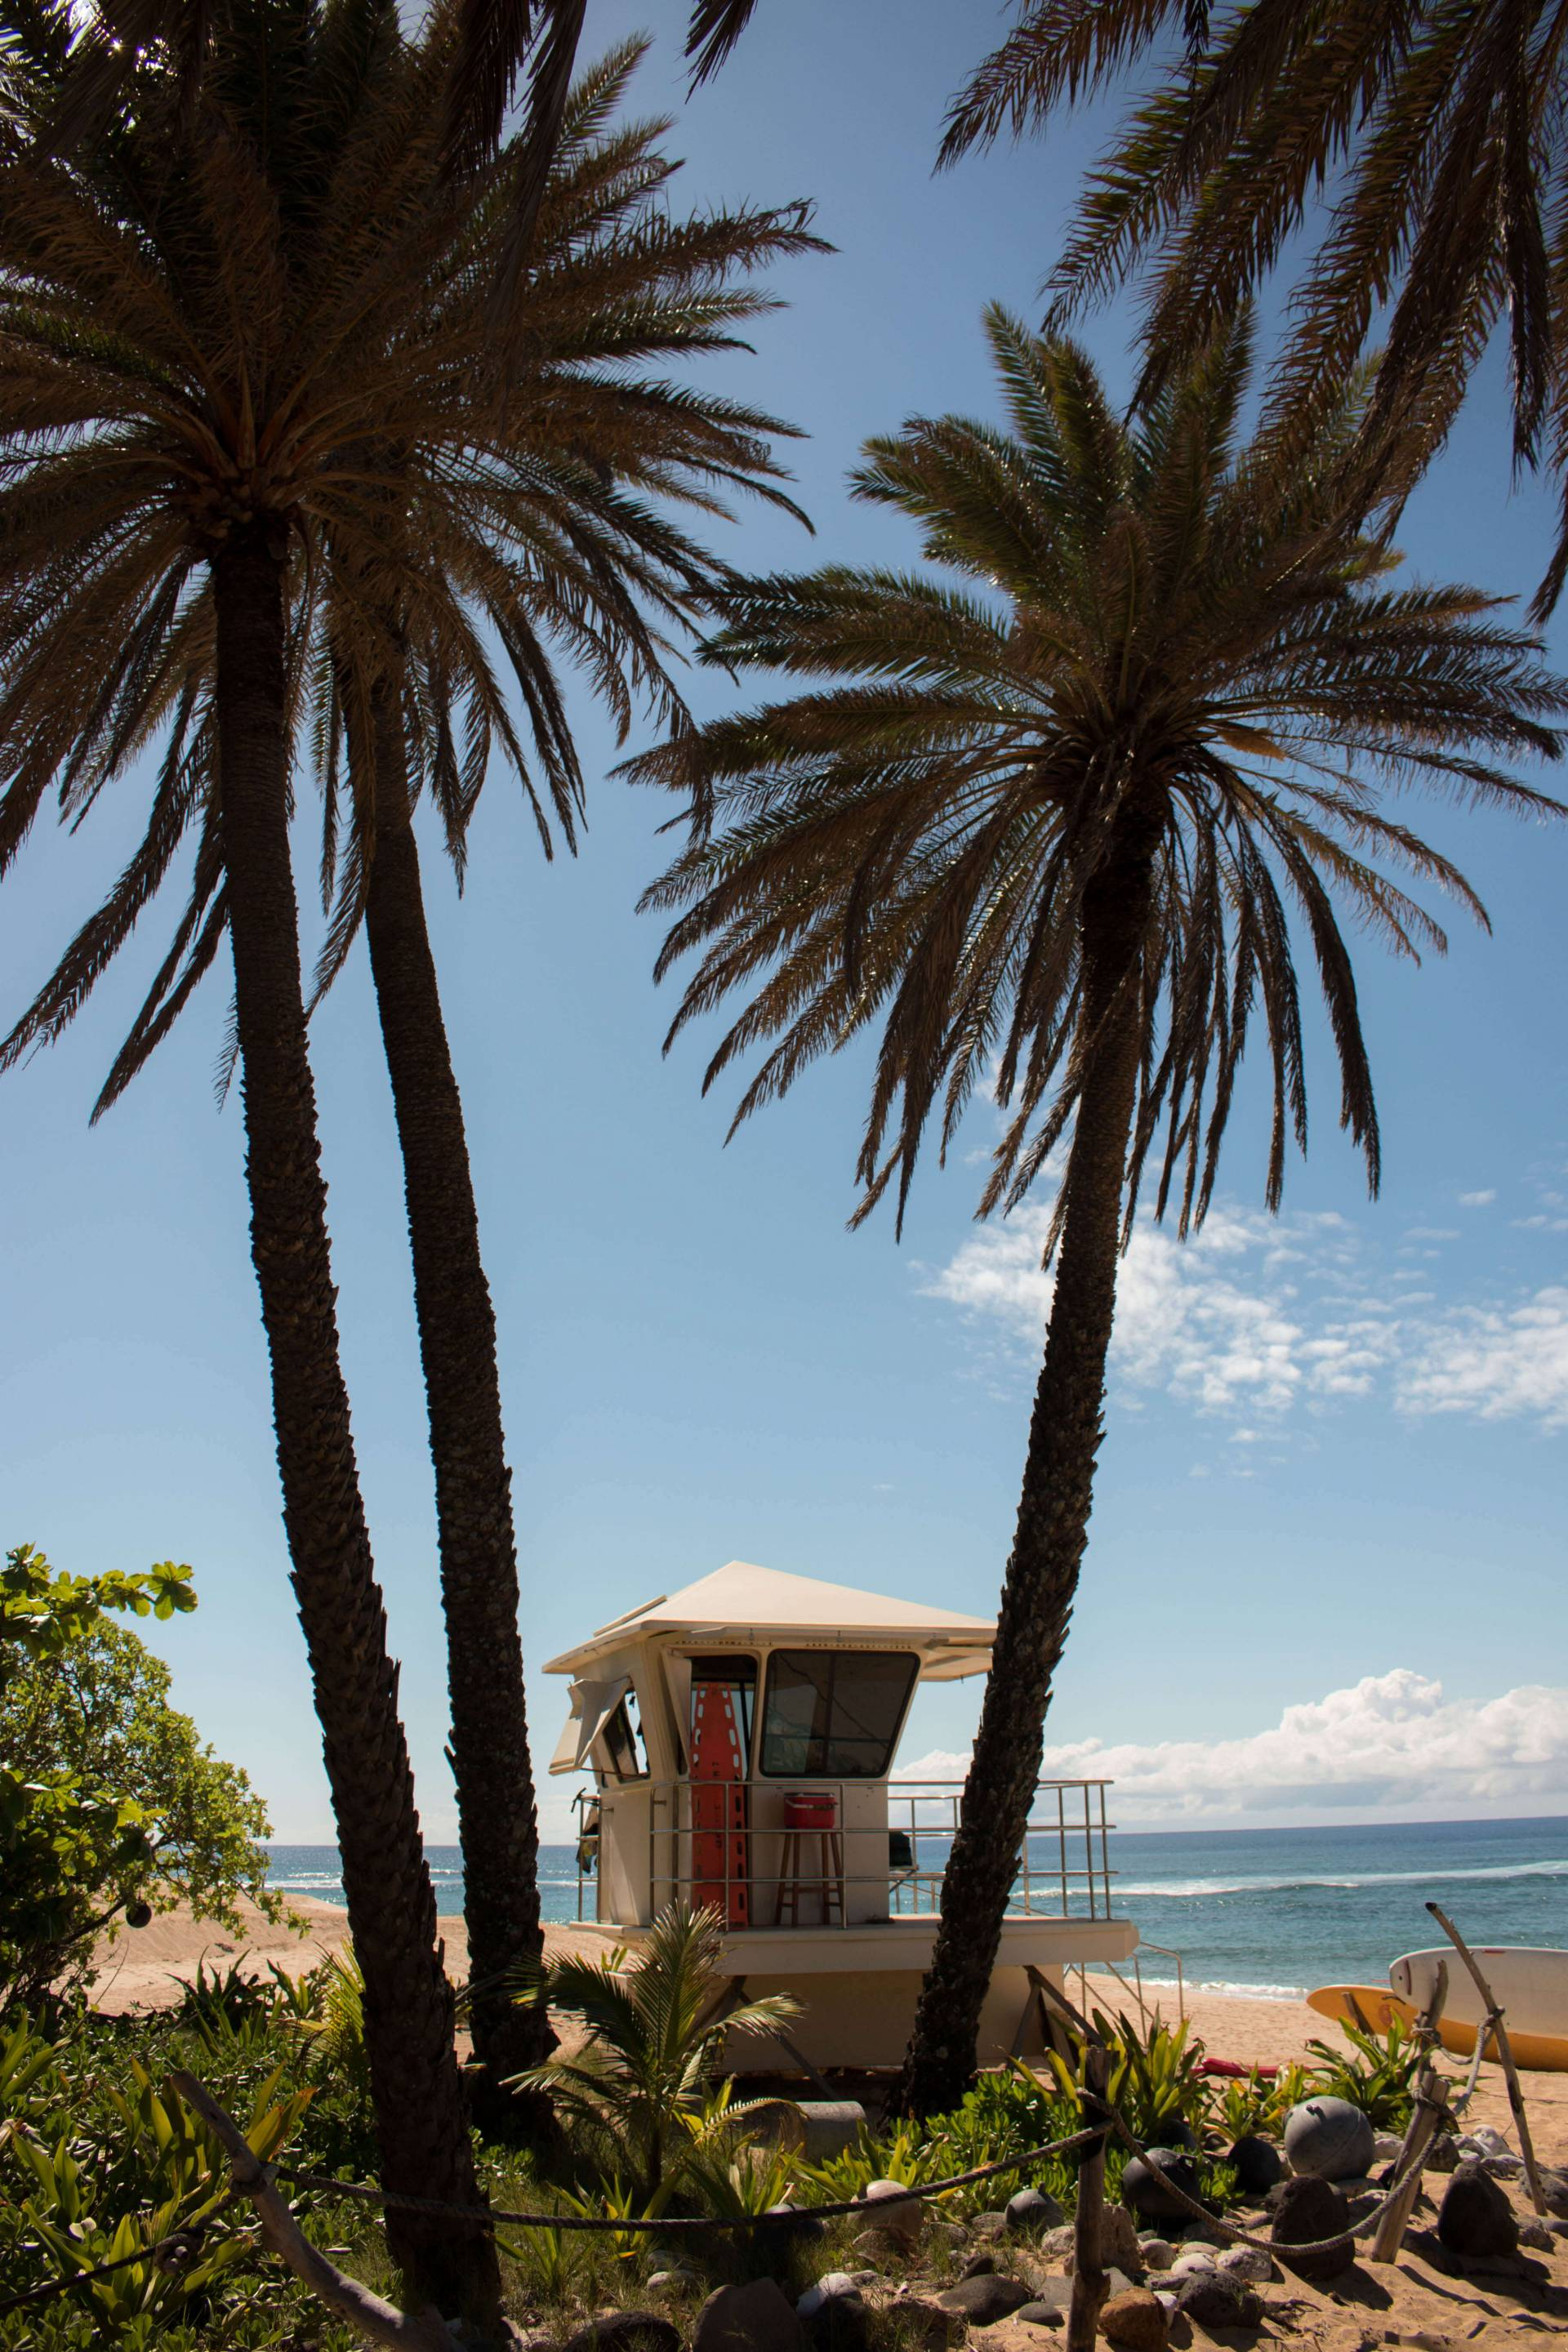 lifeguard tower surrounded by palm trees on sunset beach, oahu, hawaii